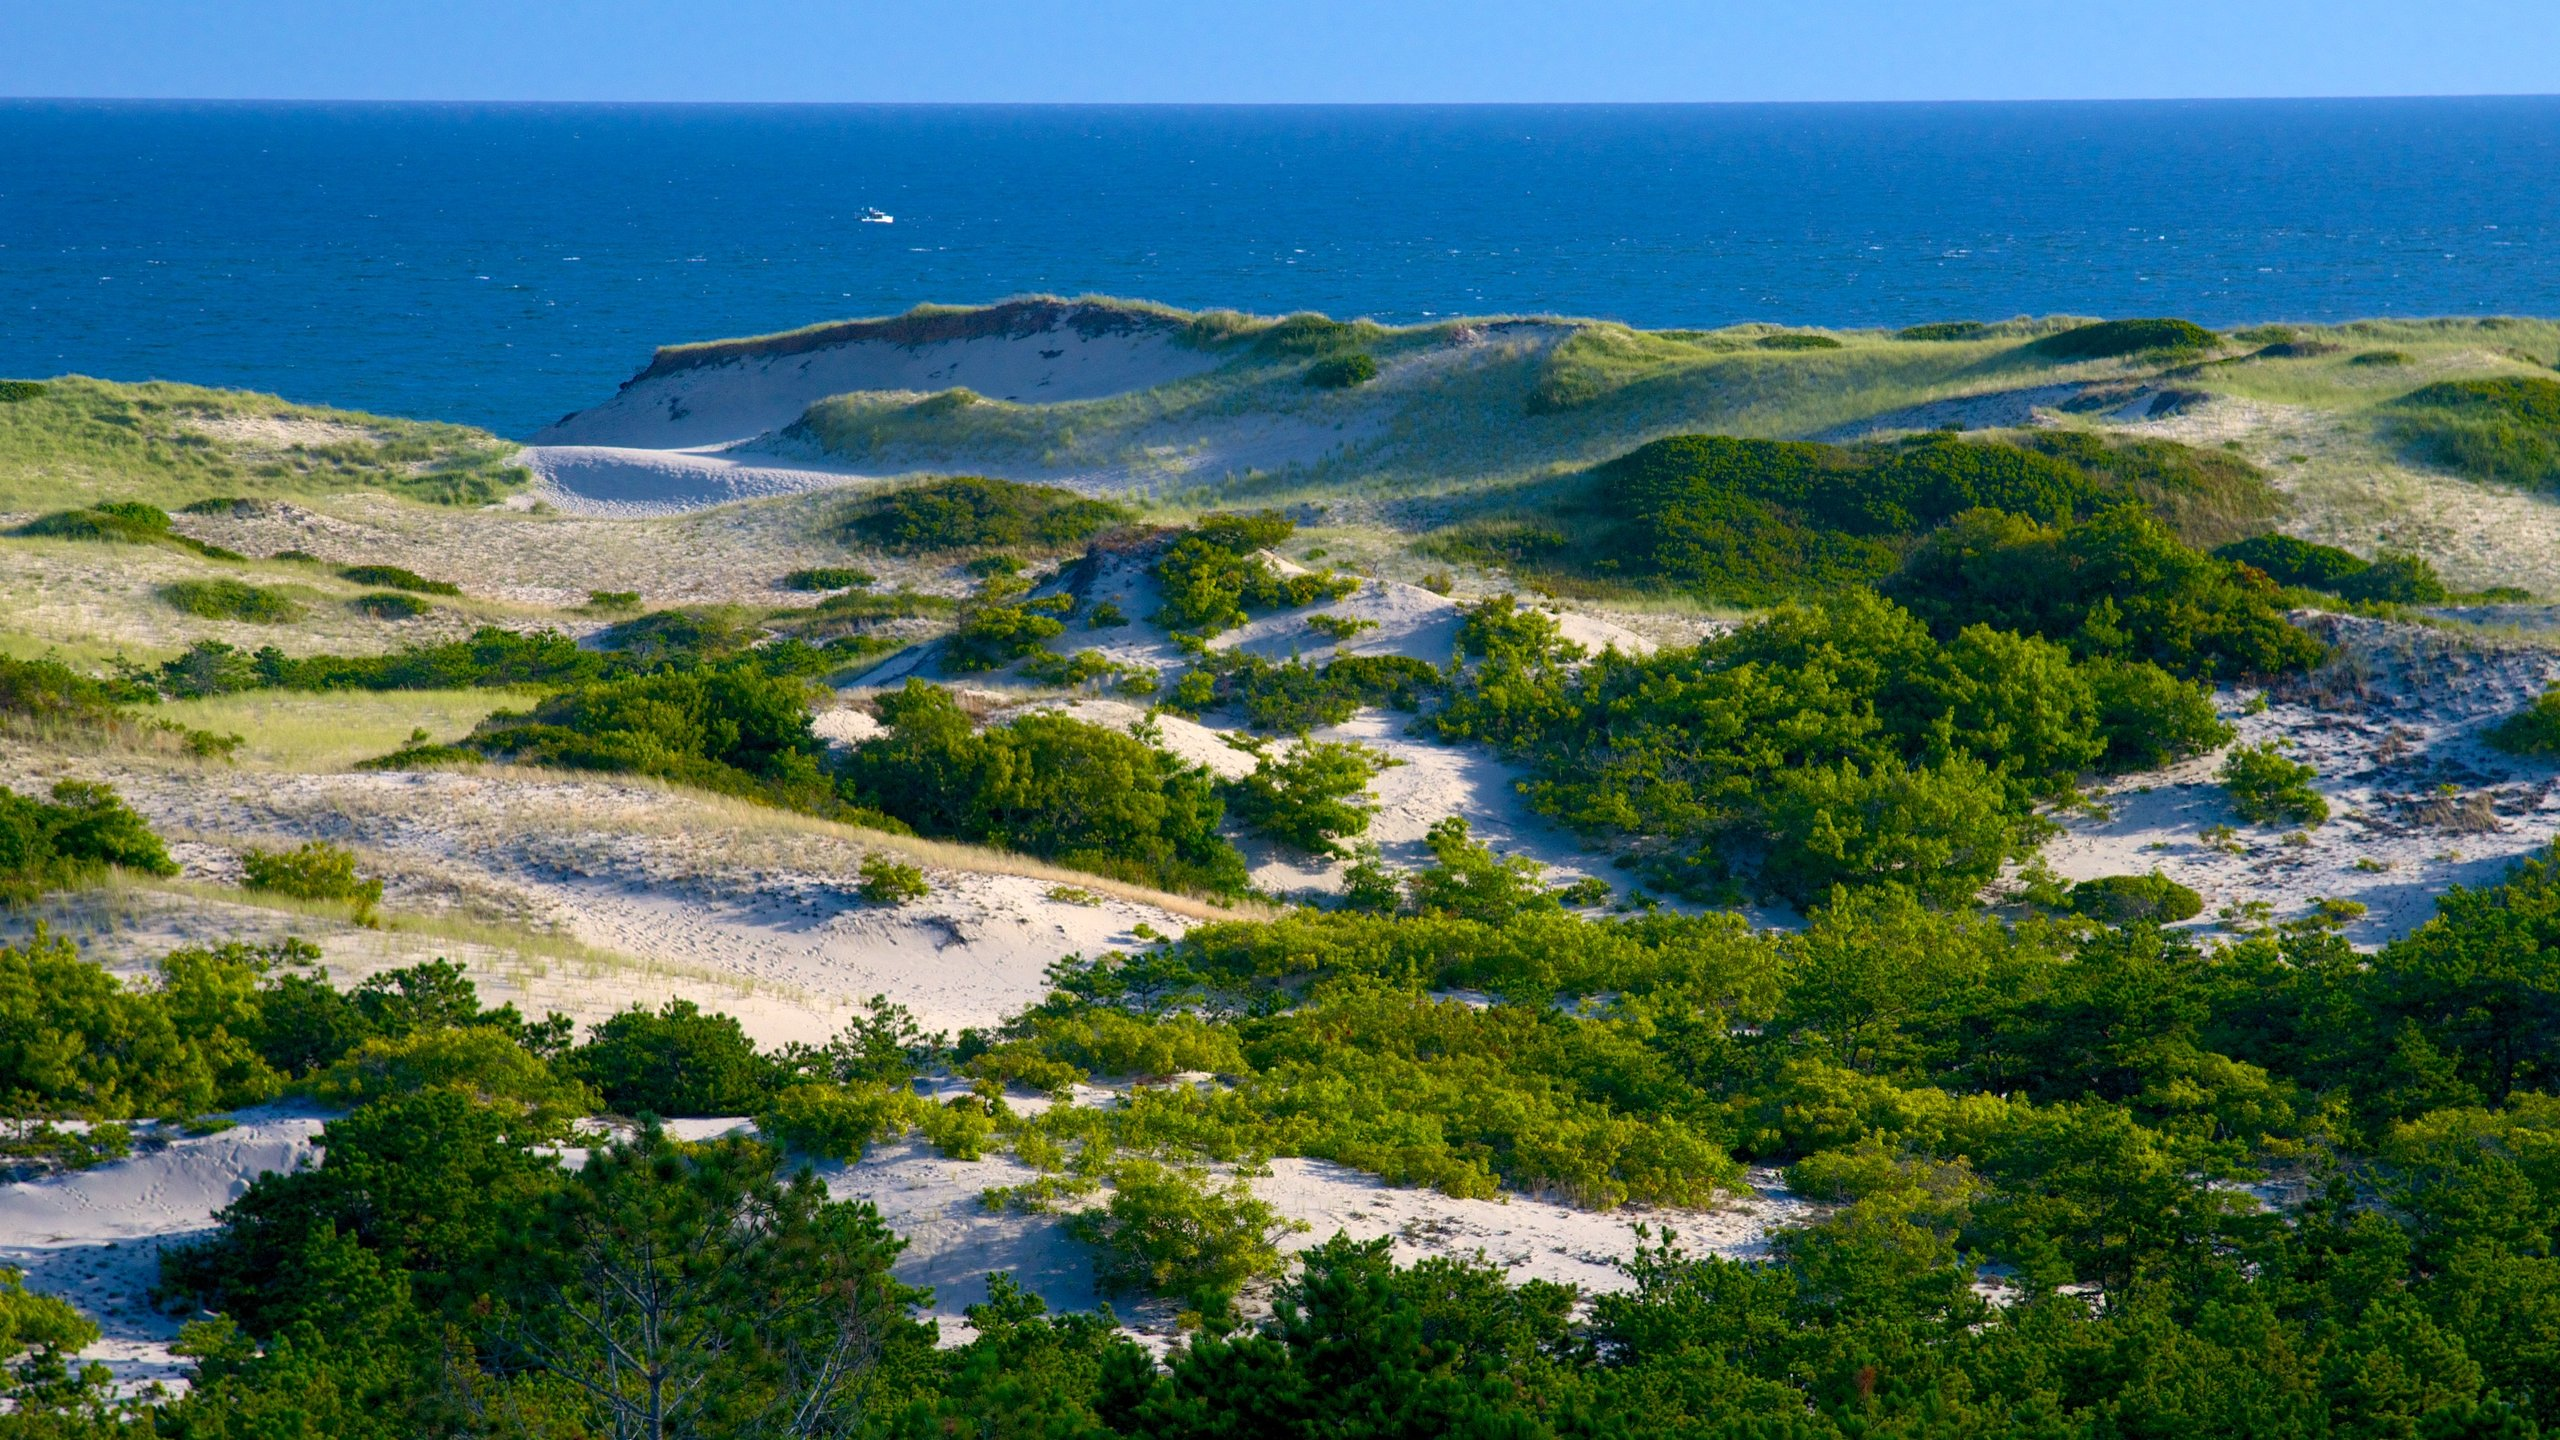 Covering over miles of shoreline around Cape Cod, this national park offers endless things to see and do regardless of the season.